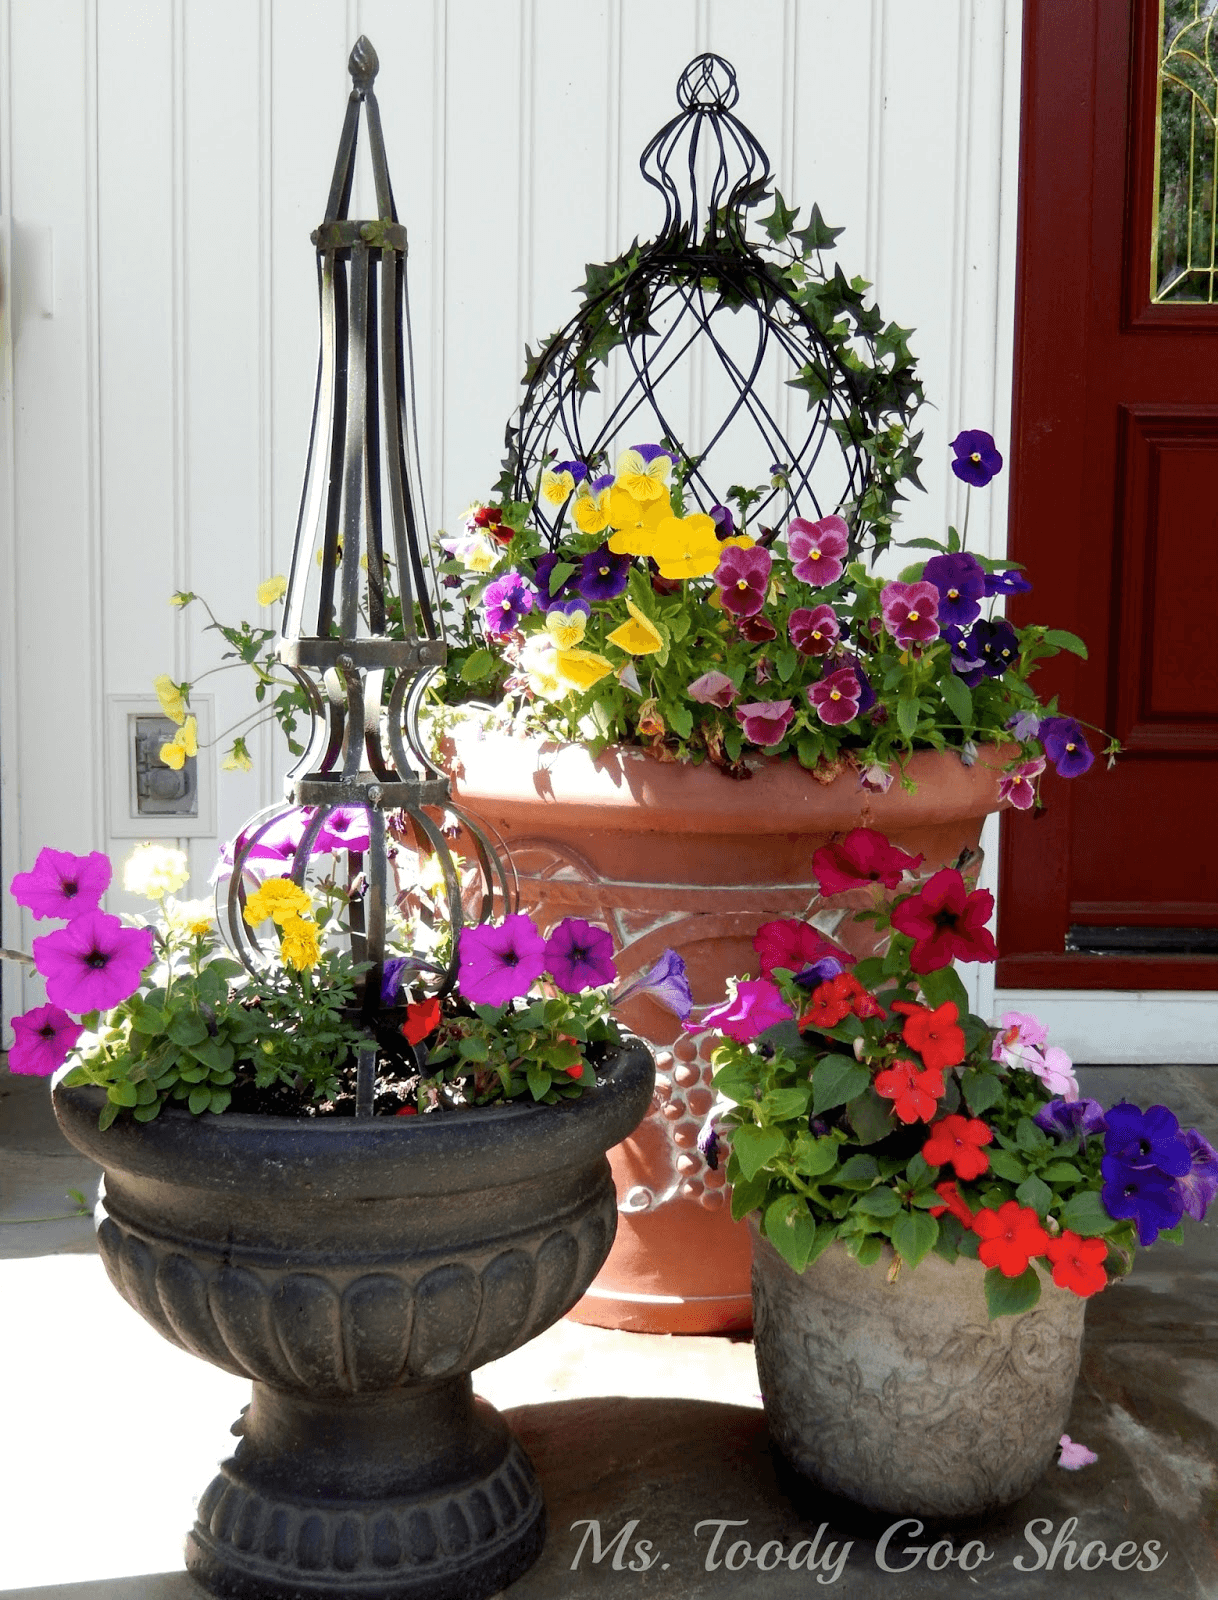 AWESOME IDEAS WITH COLORFUL GERANIUM FOR PORCH DECORATION. HOW TO DO IT